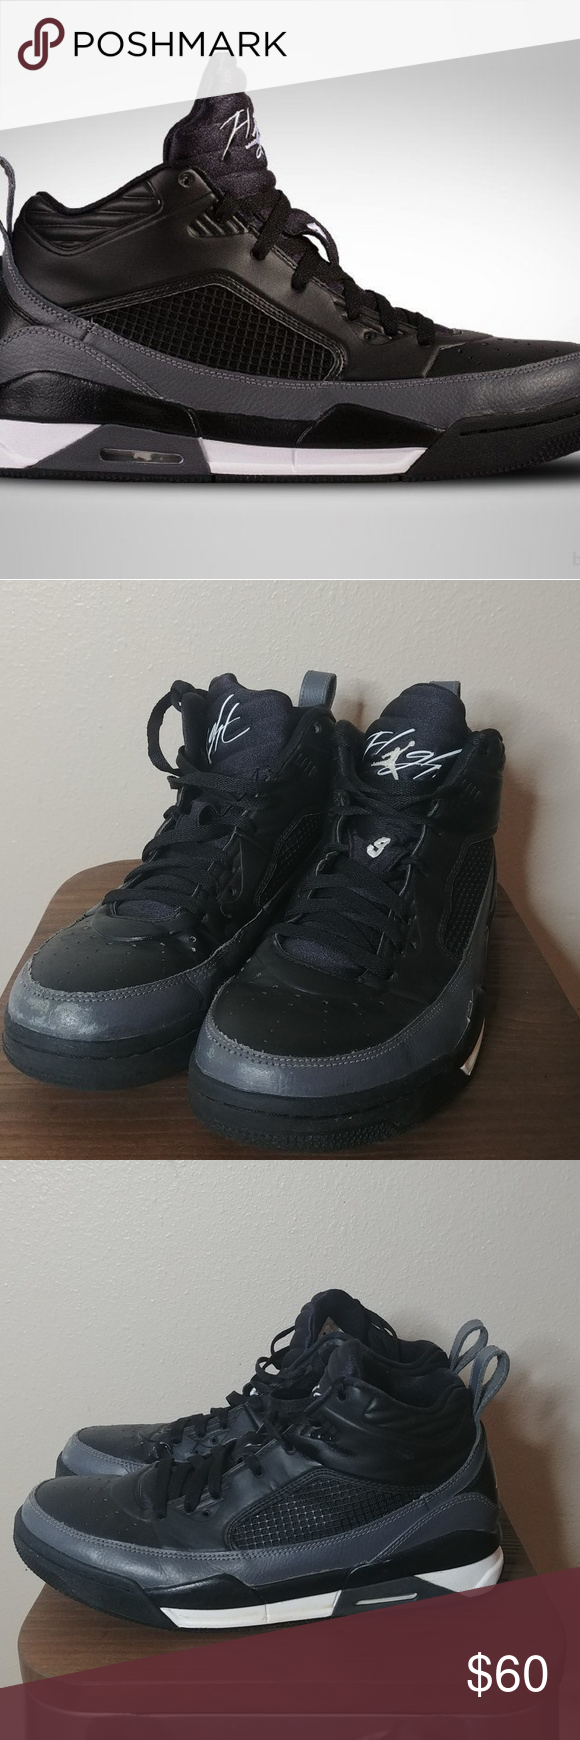 ee499db53d7 Air Jordan Flight Nine Point Five 654262-005 10 Air Jordan Flight Nine  Point Five 9.5 Style  654262-005 Size 10 Preowned